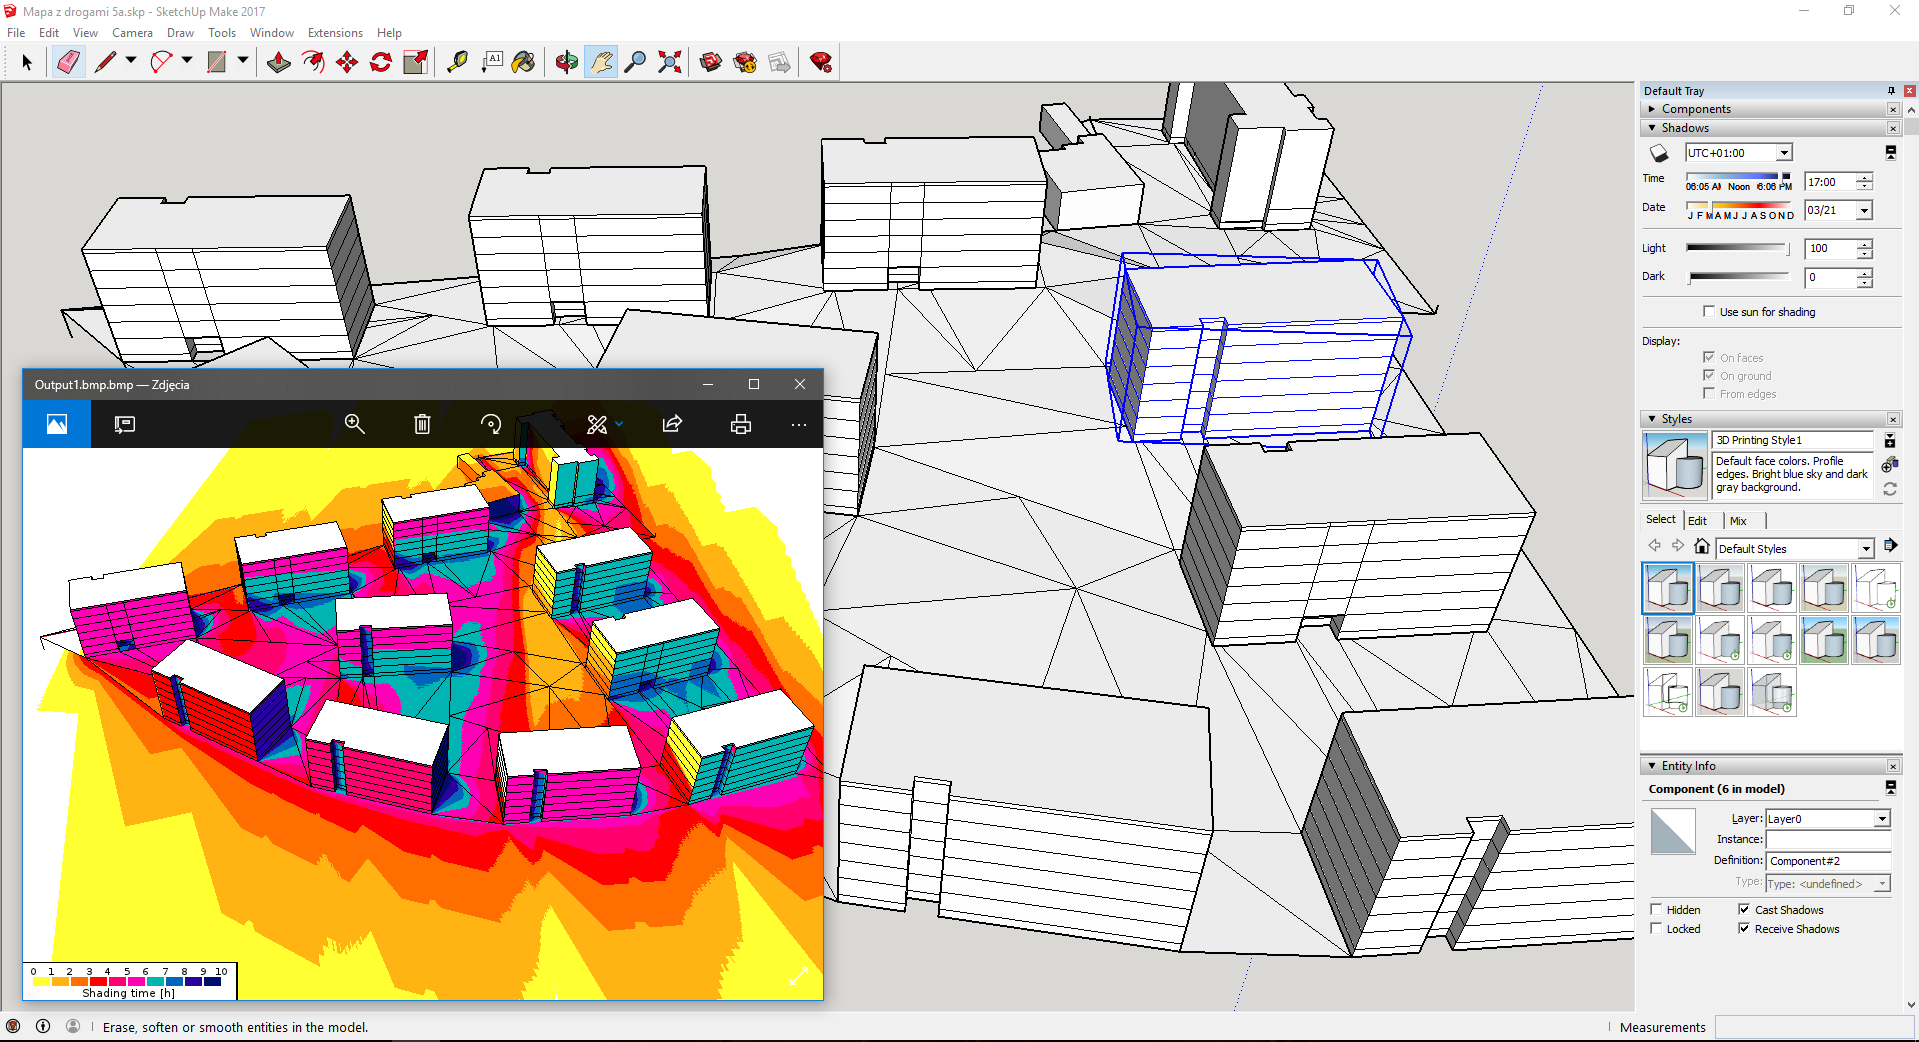 Insolation analysis and building shape optimization